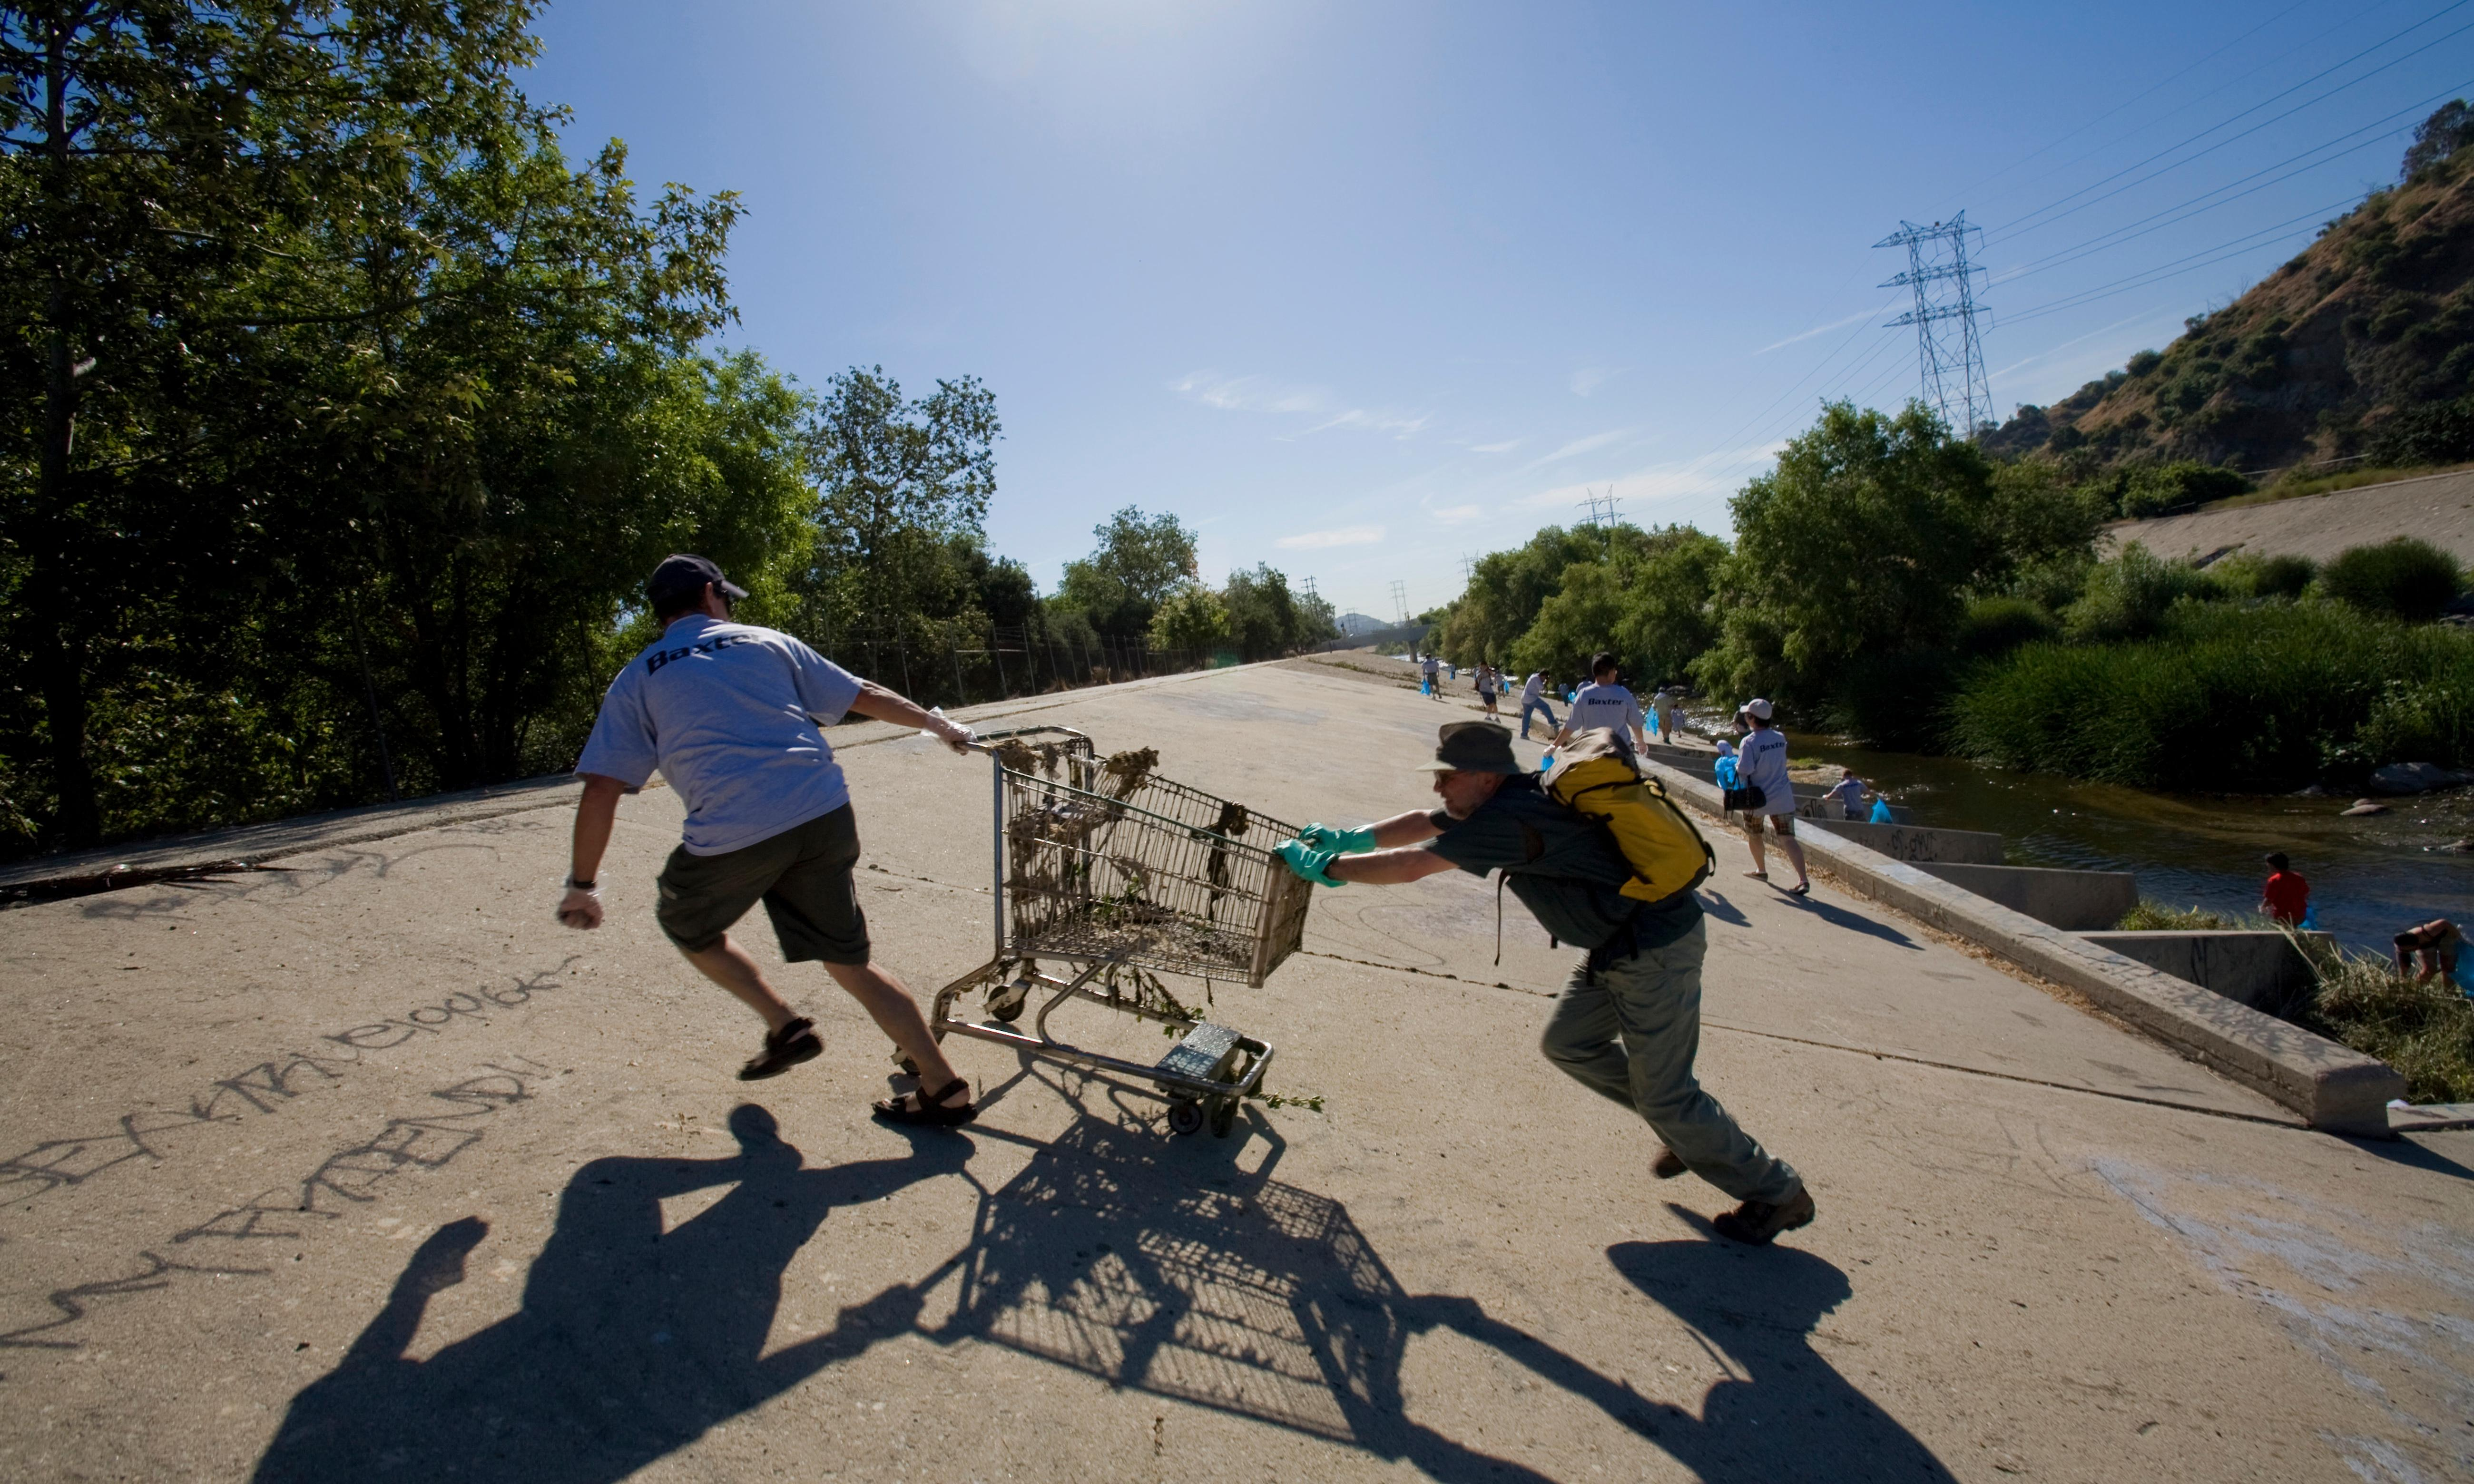 'Work or go to jail': how LA courts force thousands to do unpaid labor